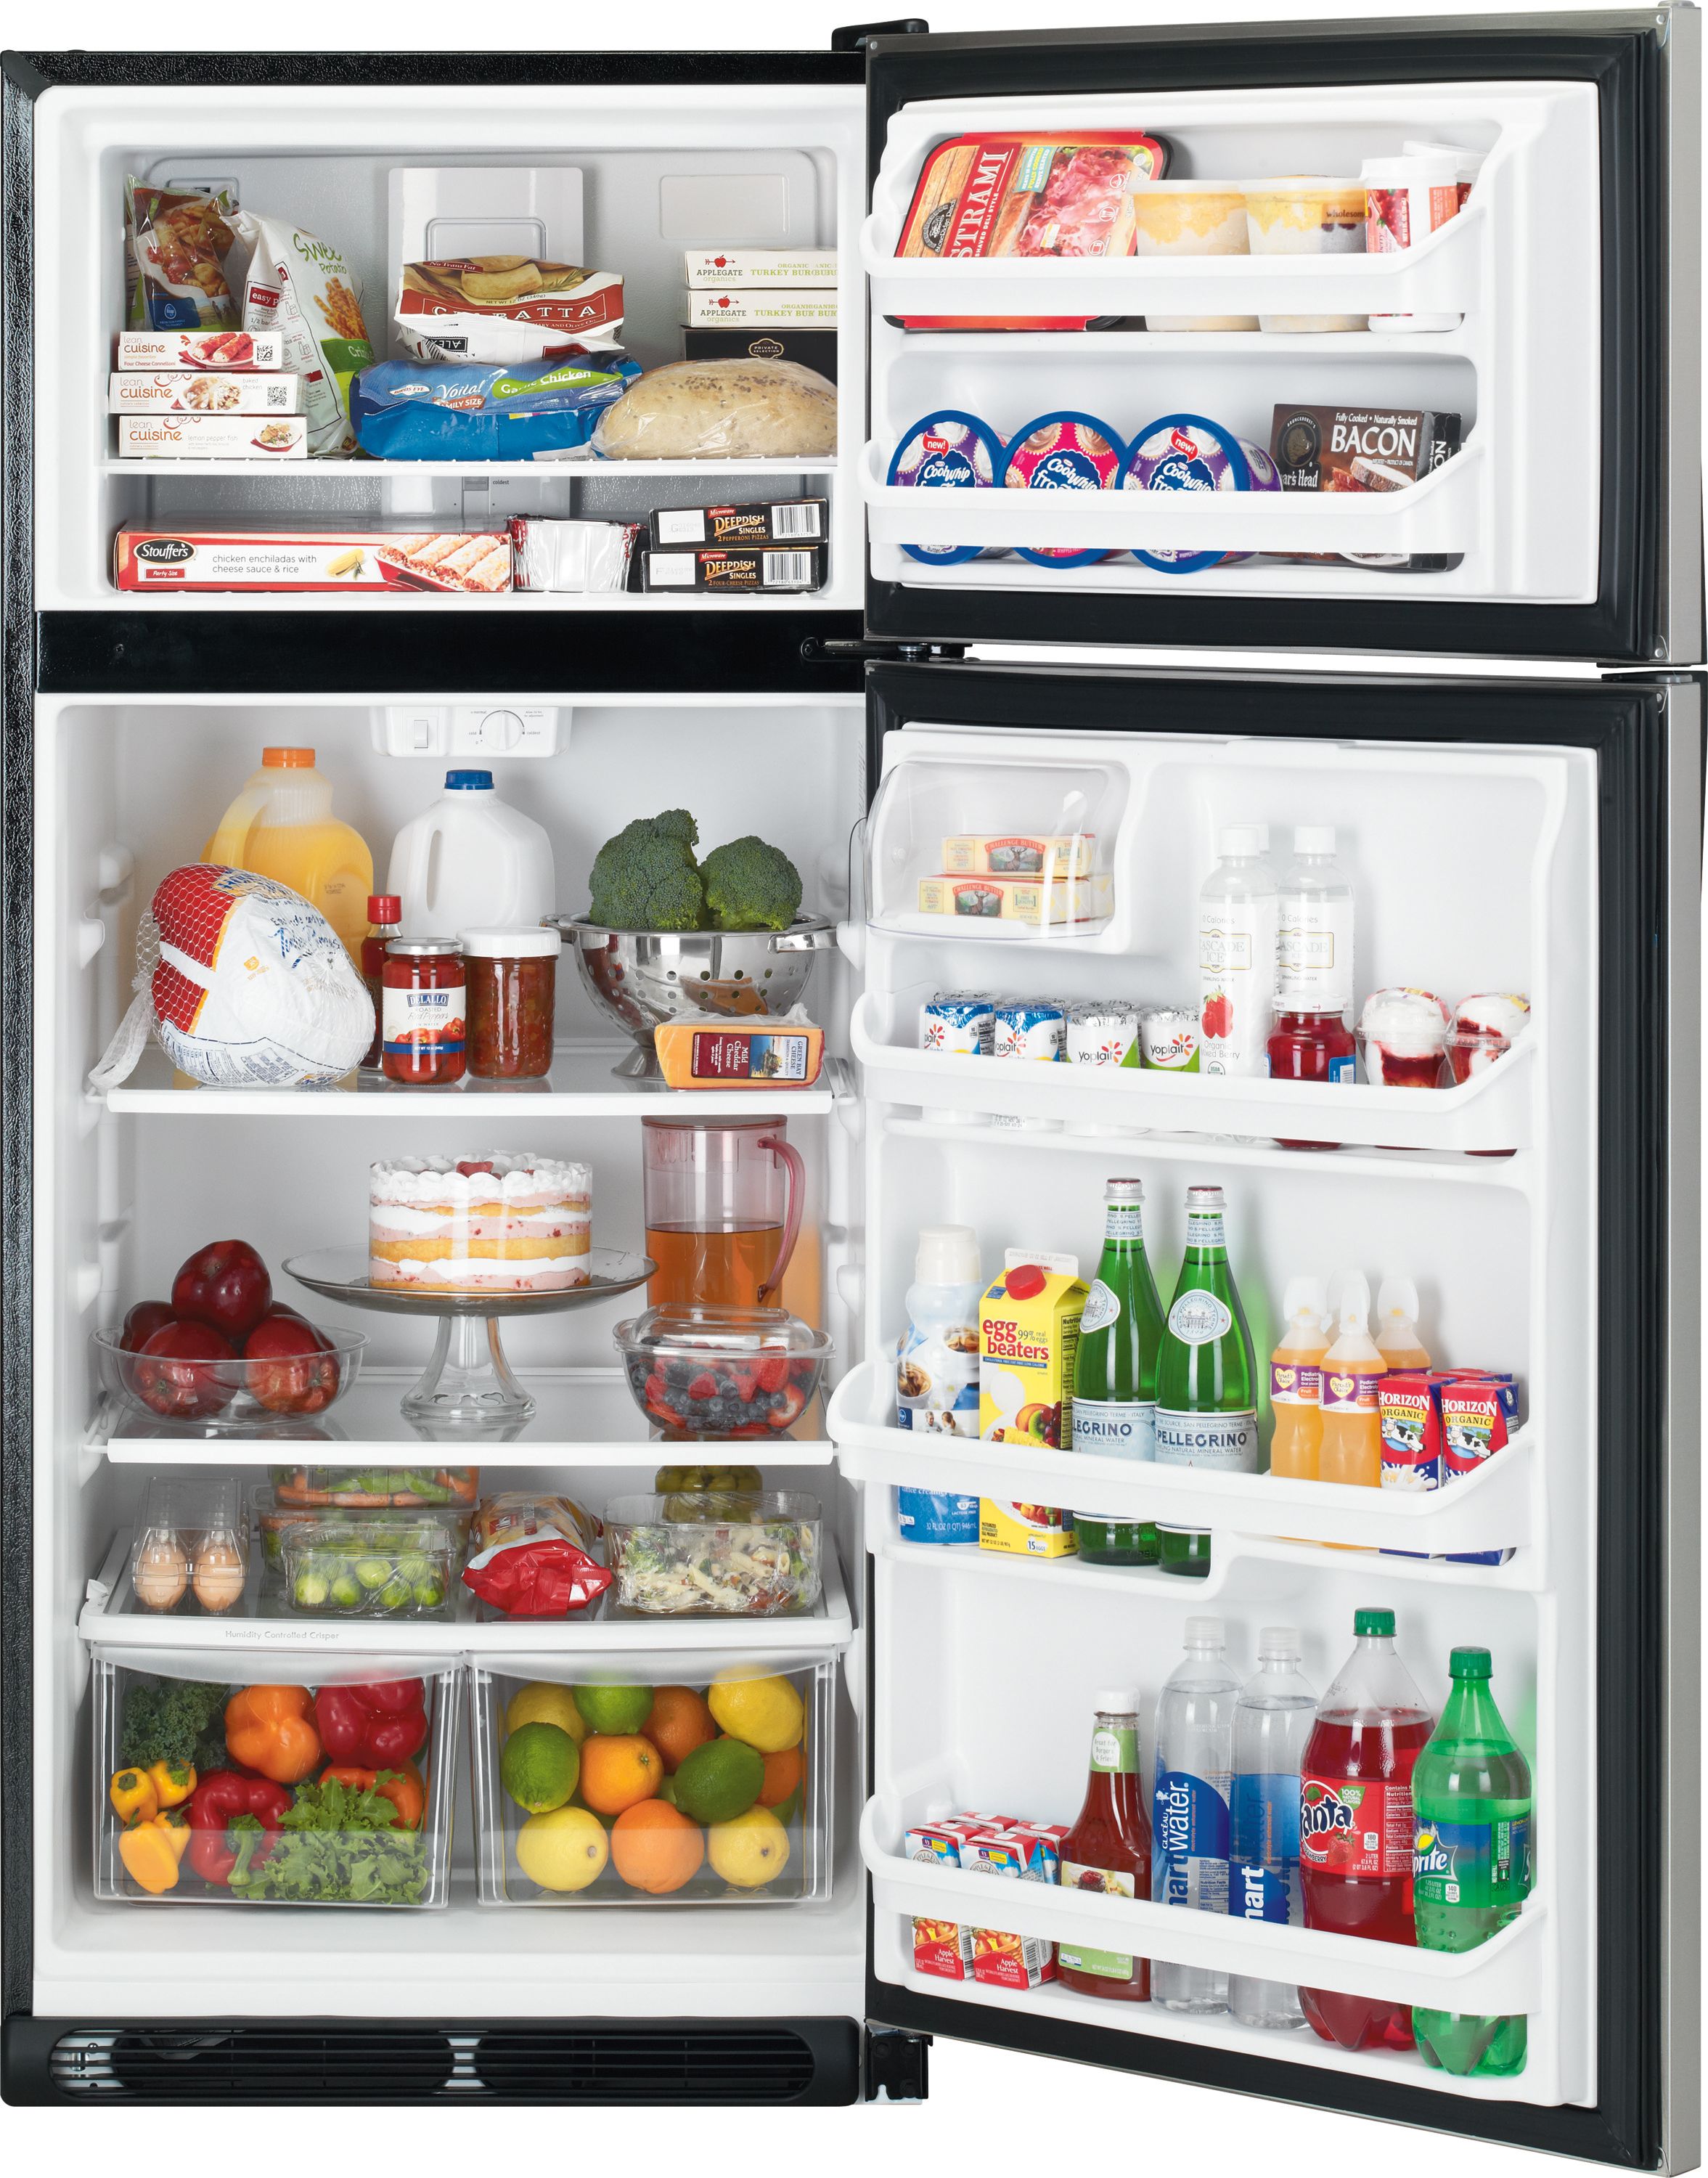 Kenmore 60503 18 cu. ft. Top Freezer Refrigerator w/ Glass Shelves - Stainless Steel